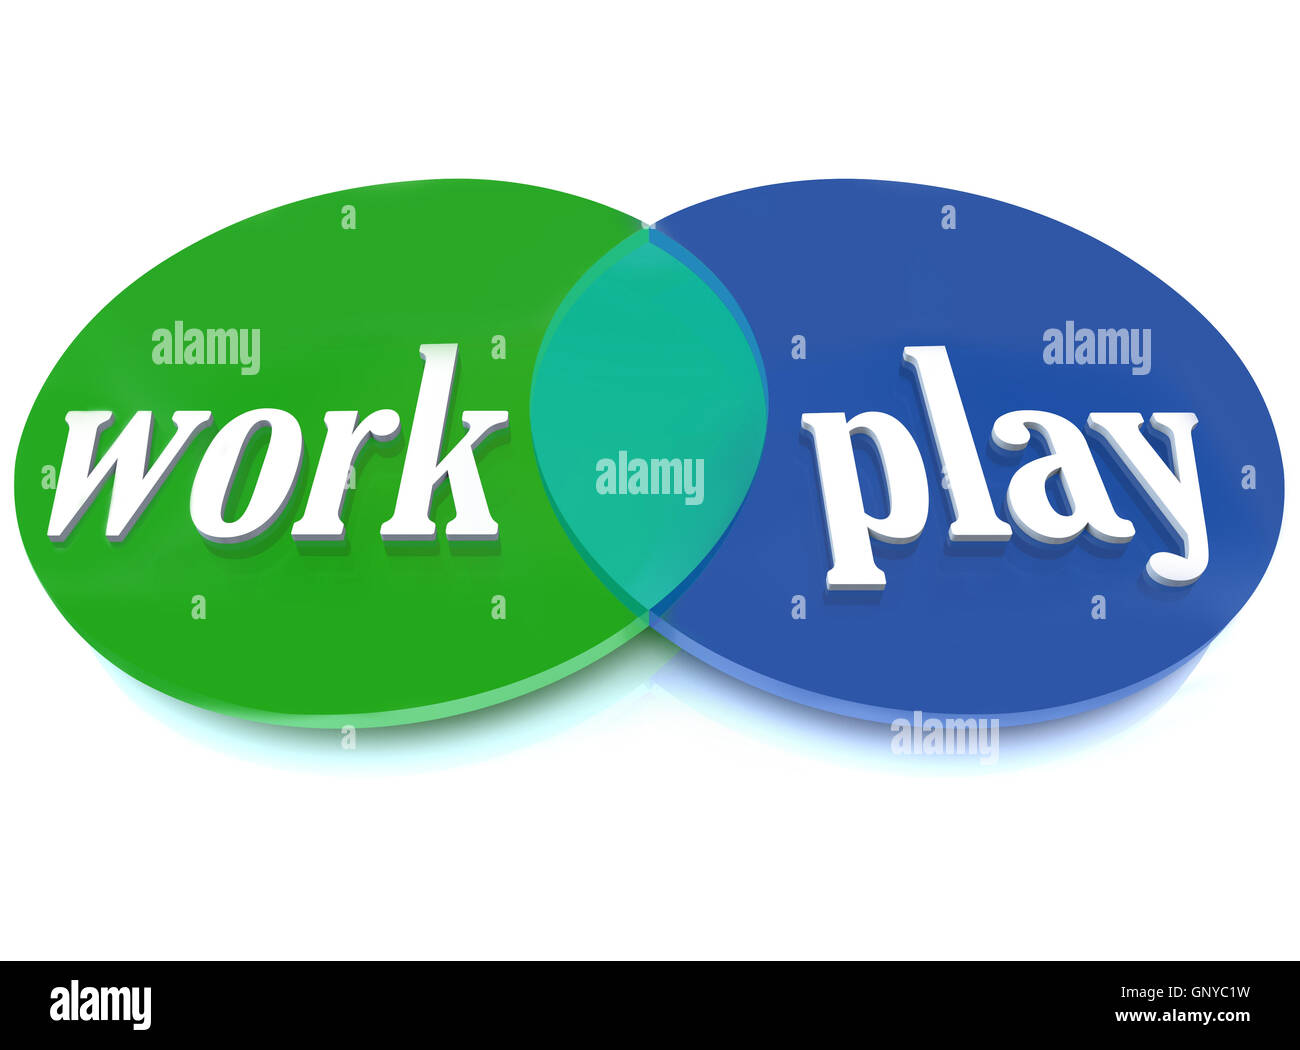 Work play venn diagram intersecting circles fun enjoyment stock work play venn diagram intersecting circles fun enjoyment pooptronica Images